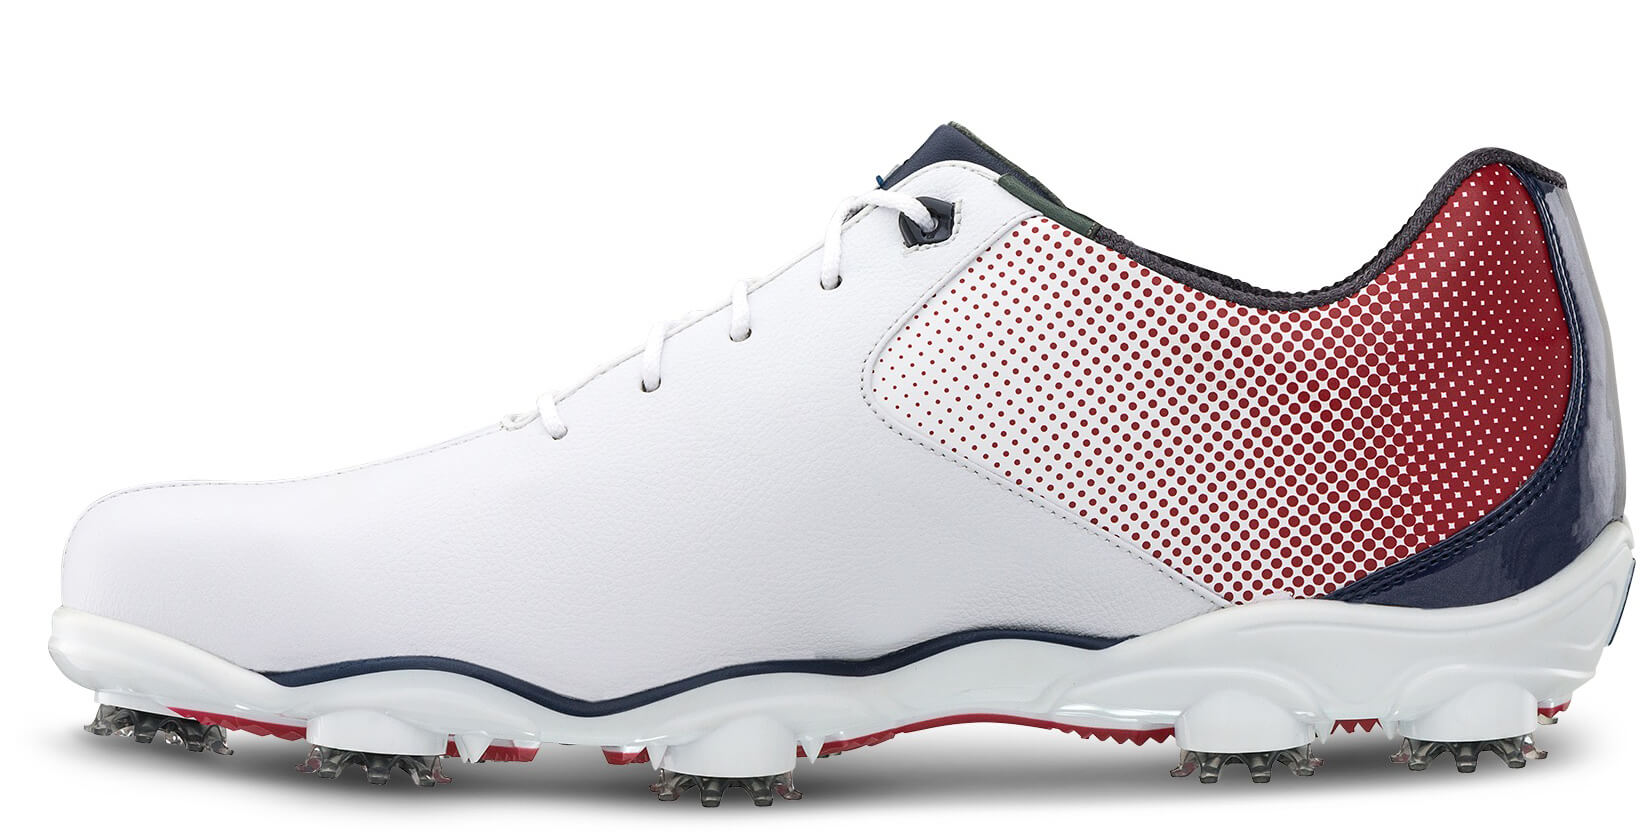 FootJoy-DNA-Helix-Golf-Shoes-Leather-Waterproof-Men-039-s-New-Choose-Color-amp-Size thumbnail 4